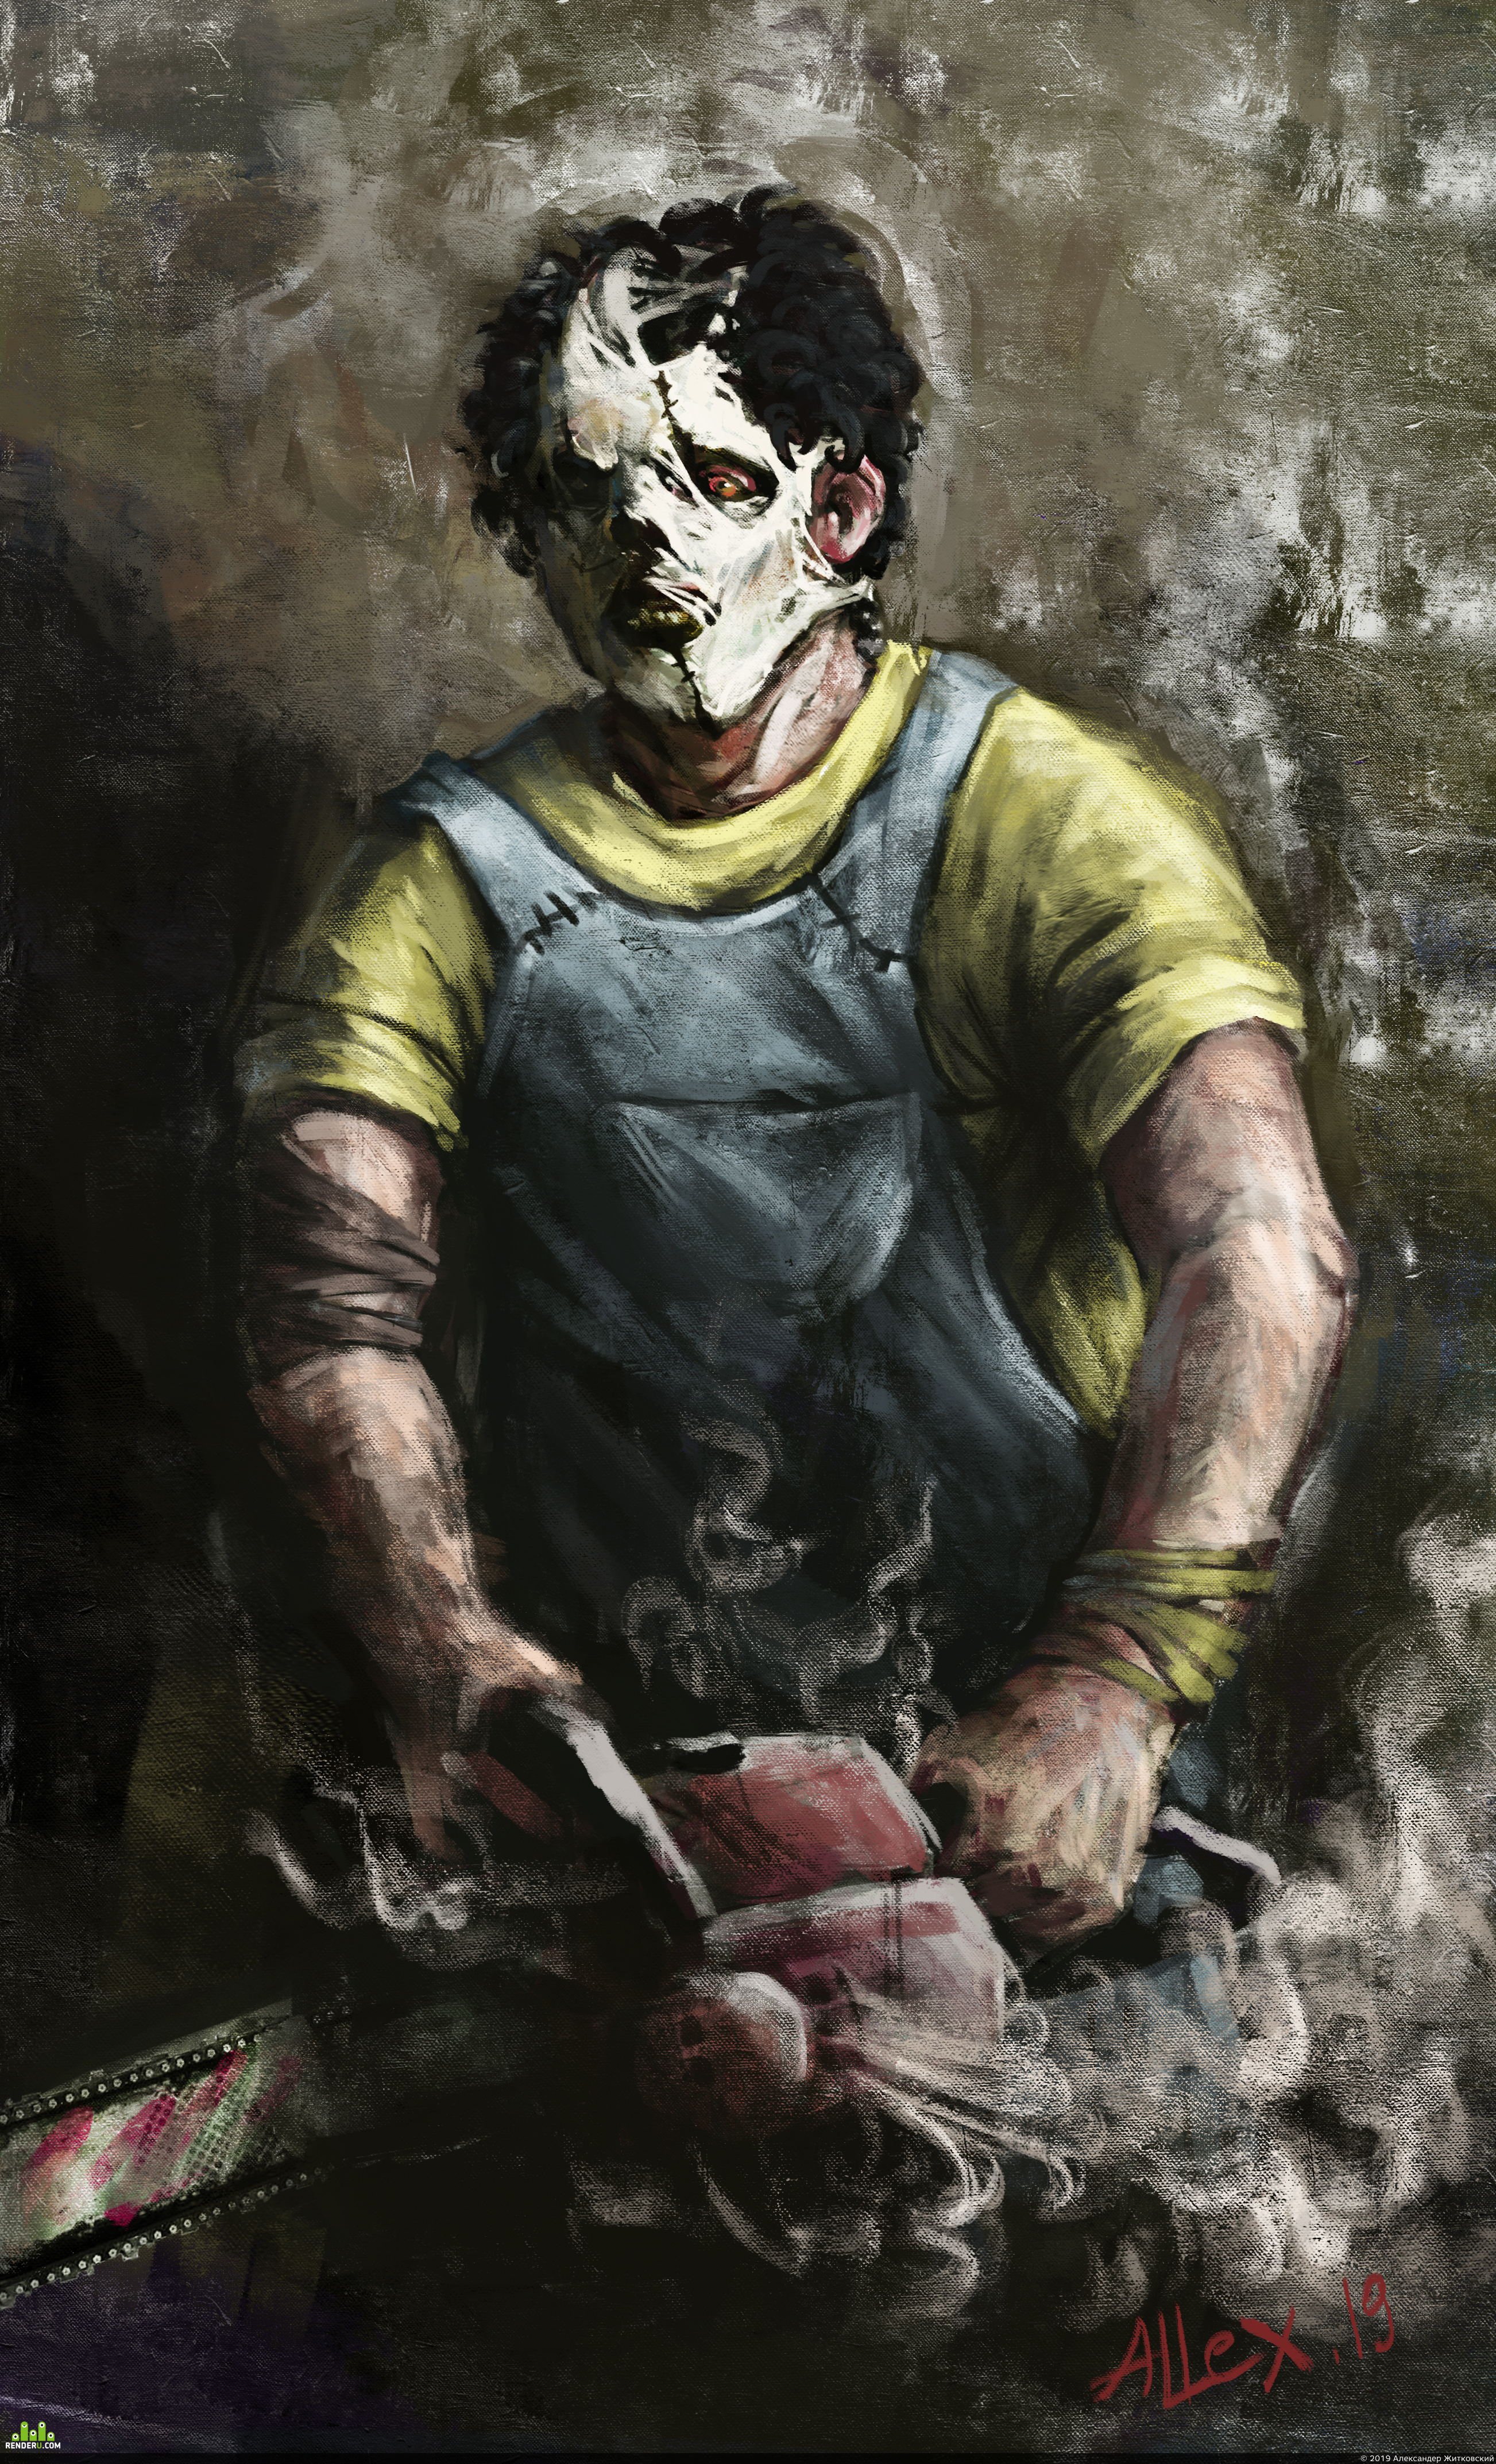 preview Leatherface